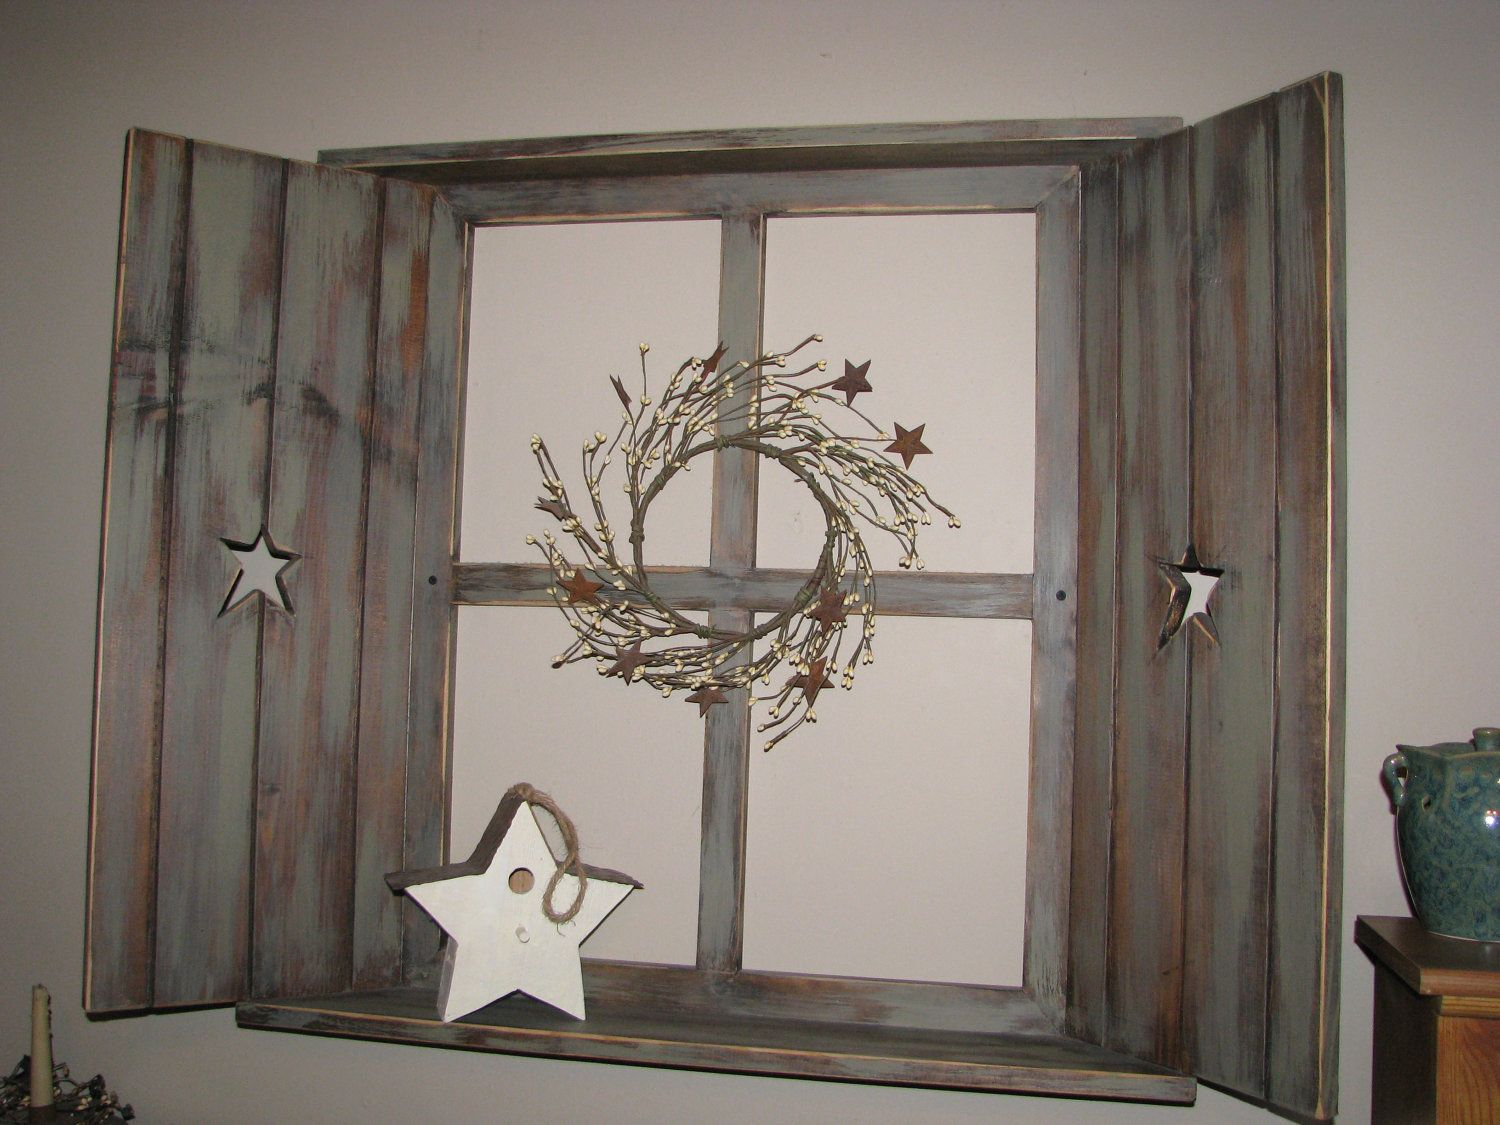 Window frame rustic pane with ledge on top and bottom and